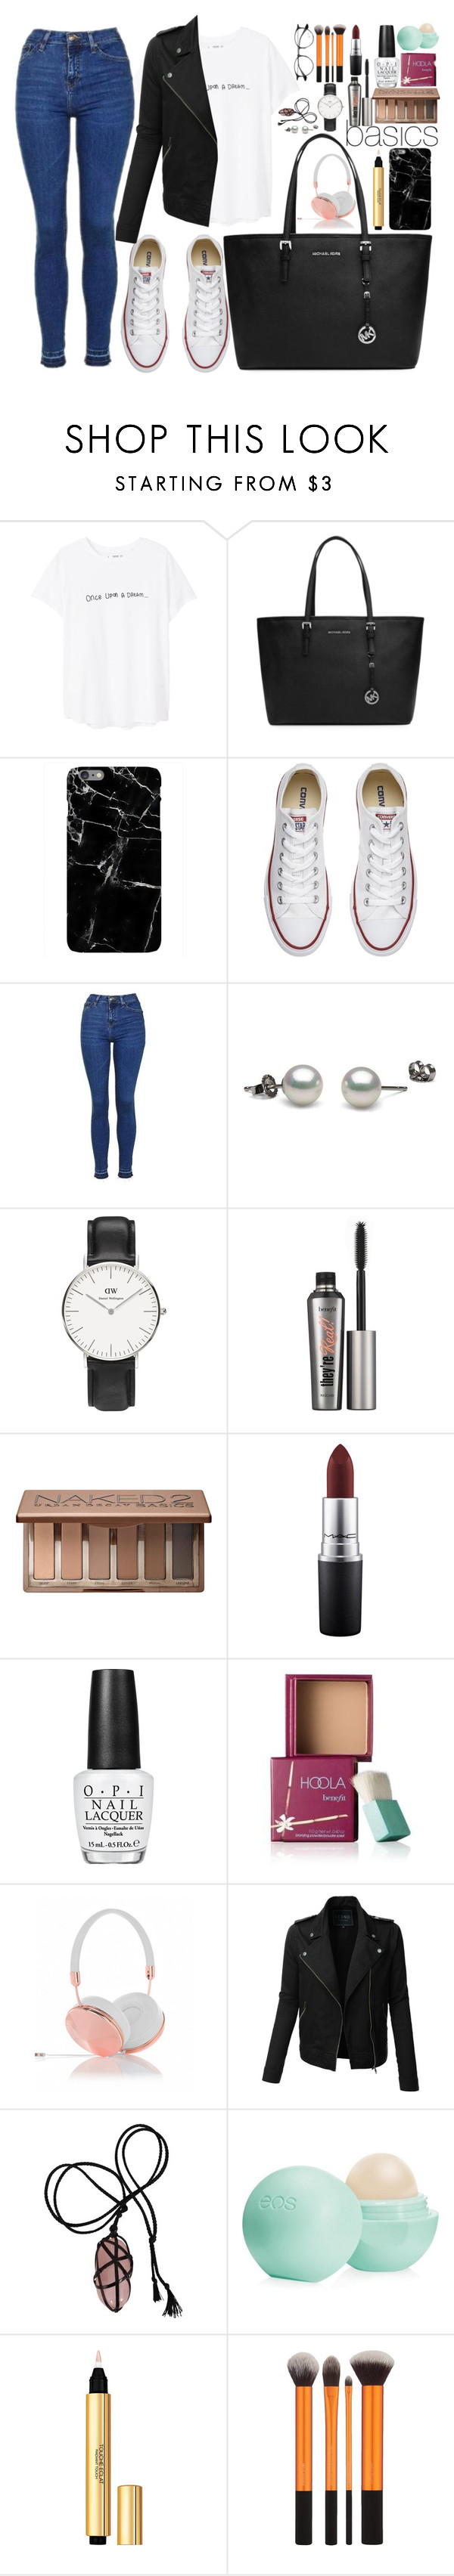 """Basics"" by opheline1610 ❤ liked on Polyvore featuring MANGO, MICHAEL Michael Kors, Converse, Topshop, Daniel Wellington, Benefit, Urban Decay, MAC Cosmetics, OPI and Frends"